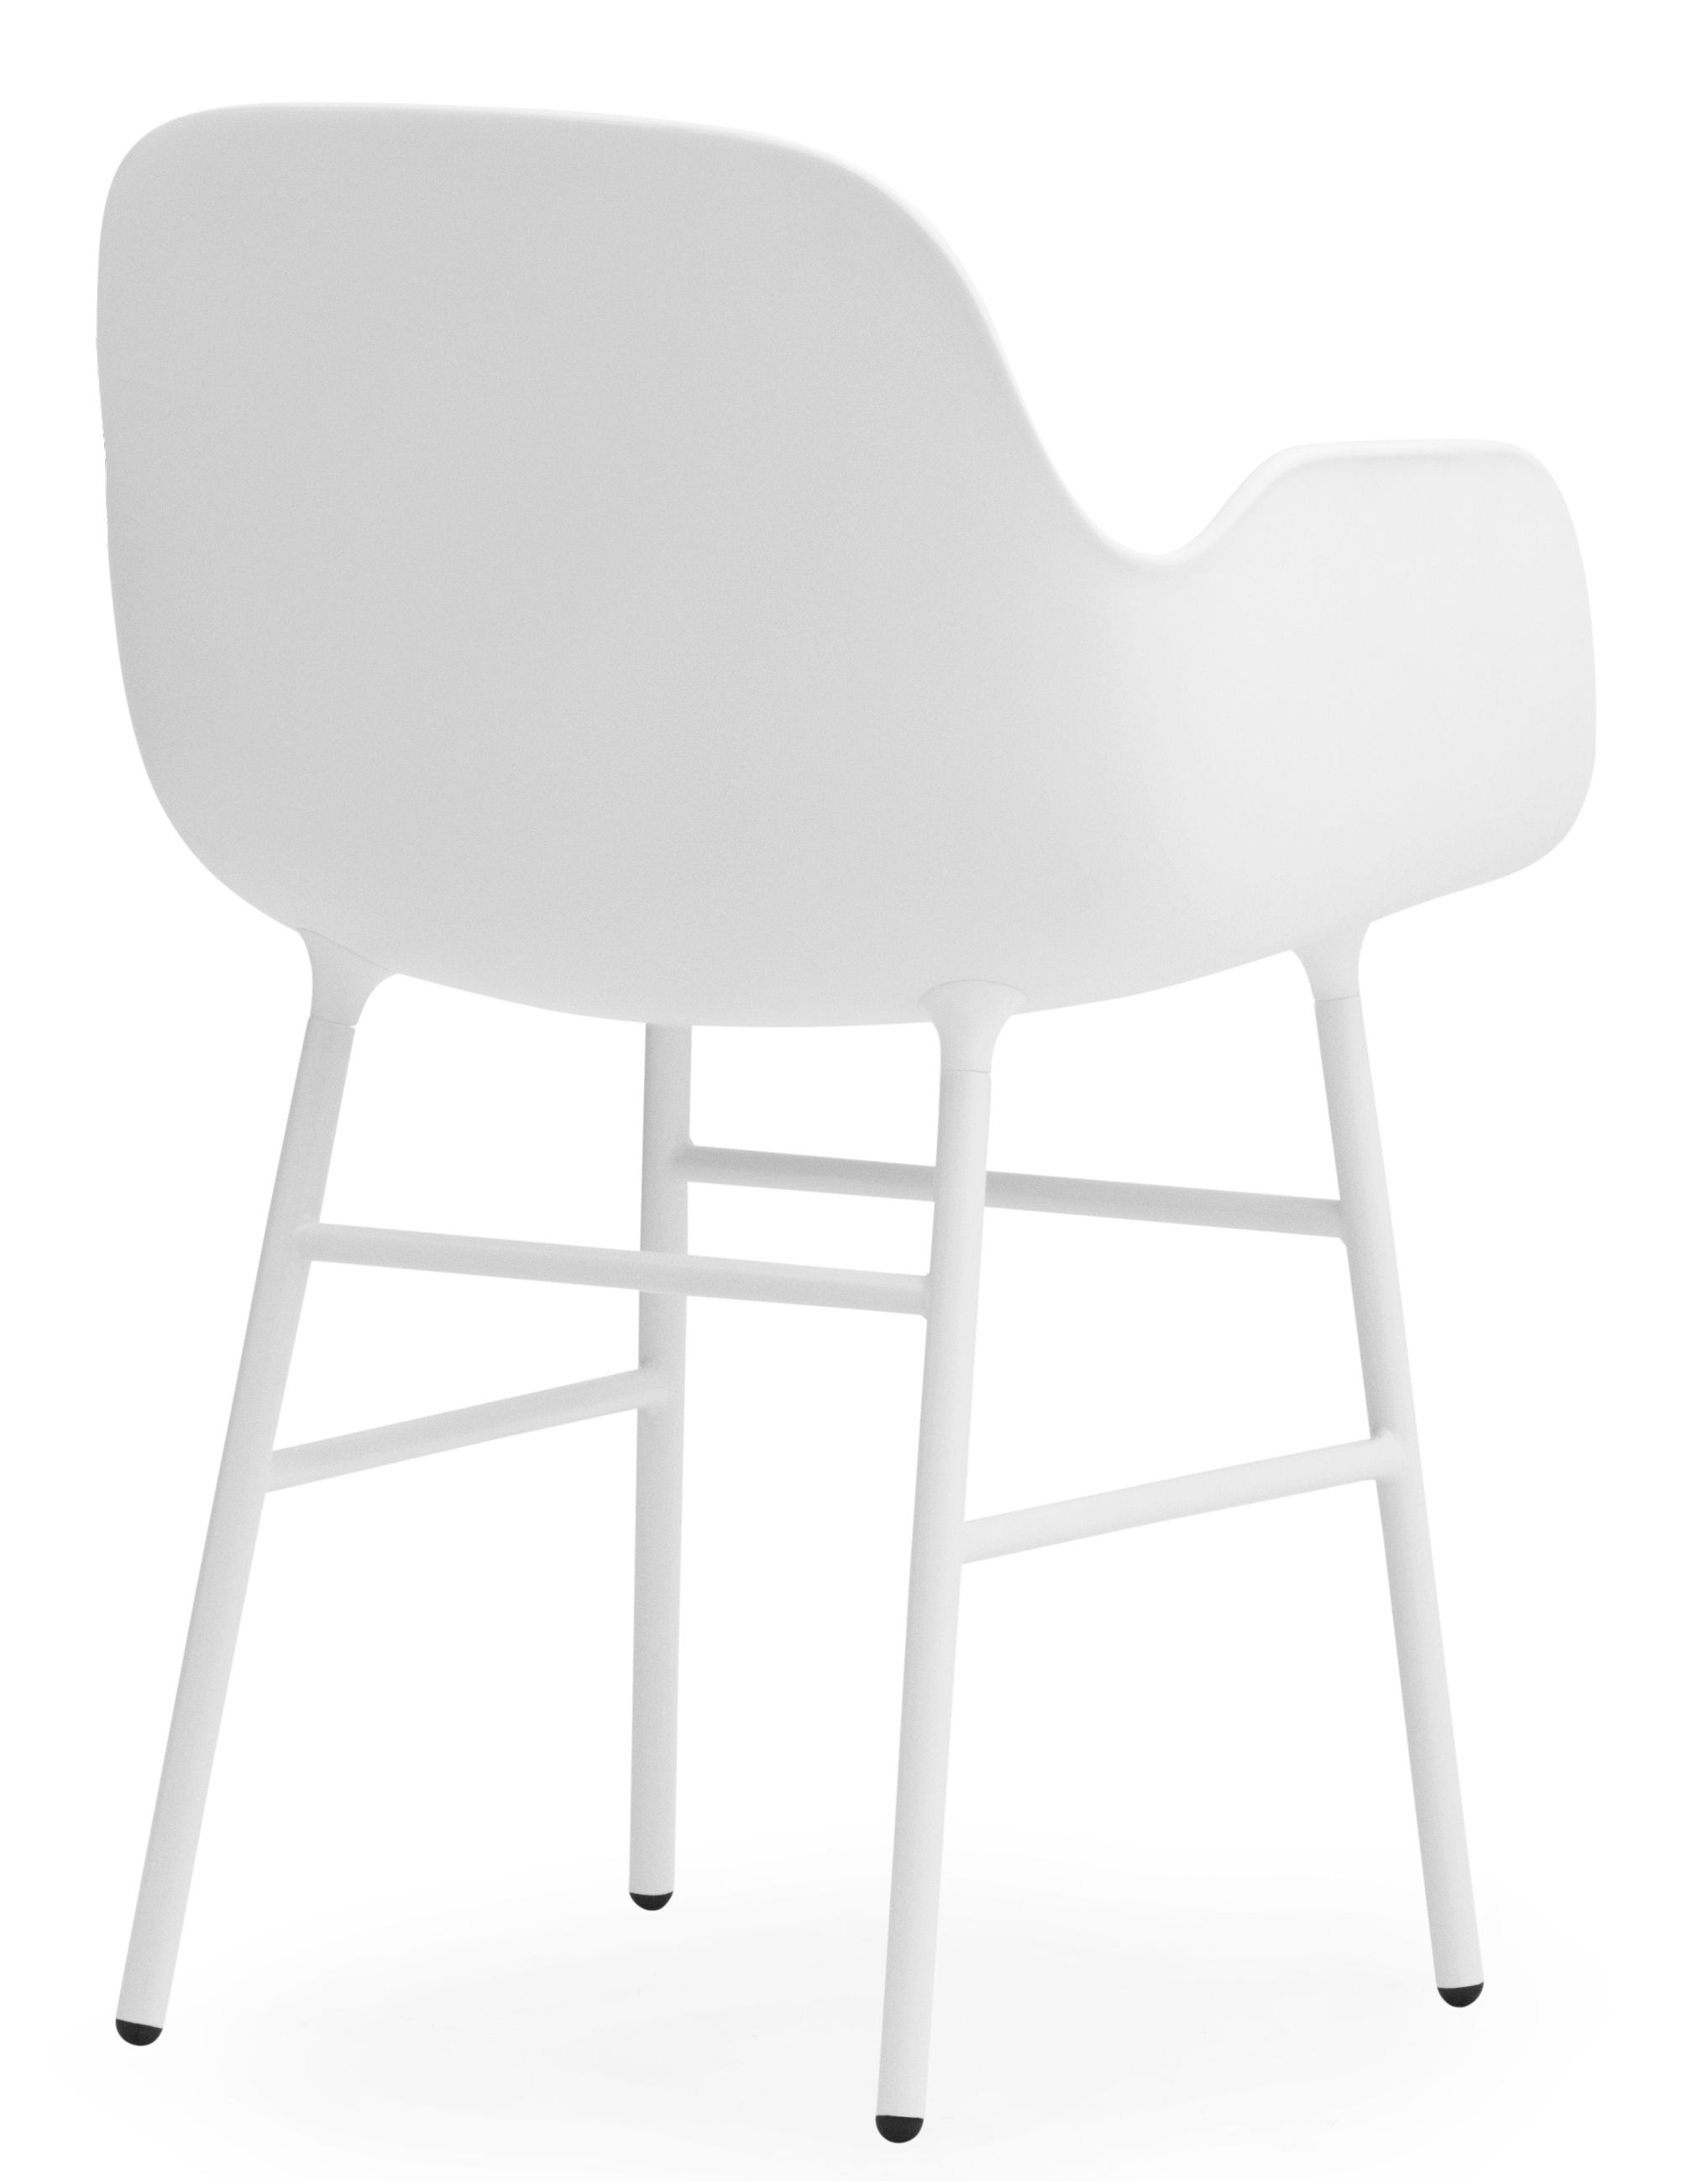 fauteuil form pied m tal blanc normann copenhagen. Black Bedroom Furniture Sets. Home Design Ideas